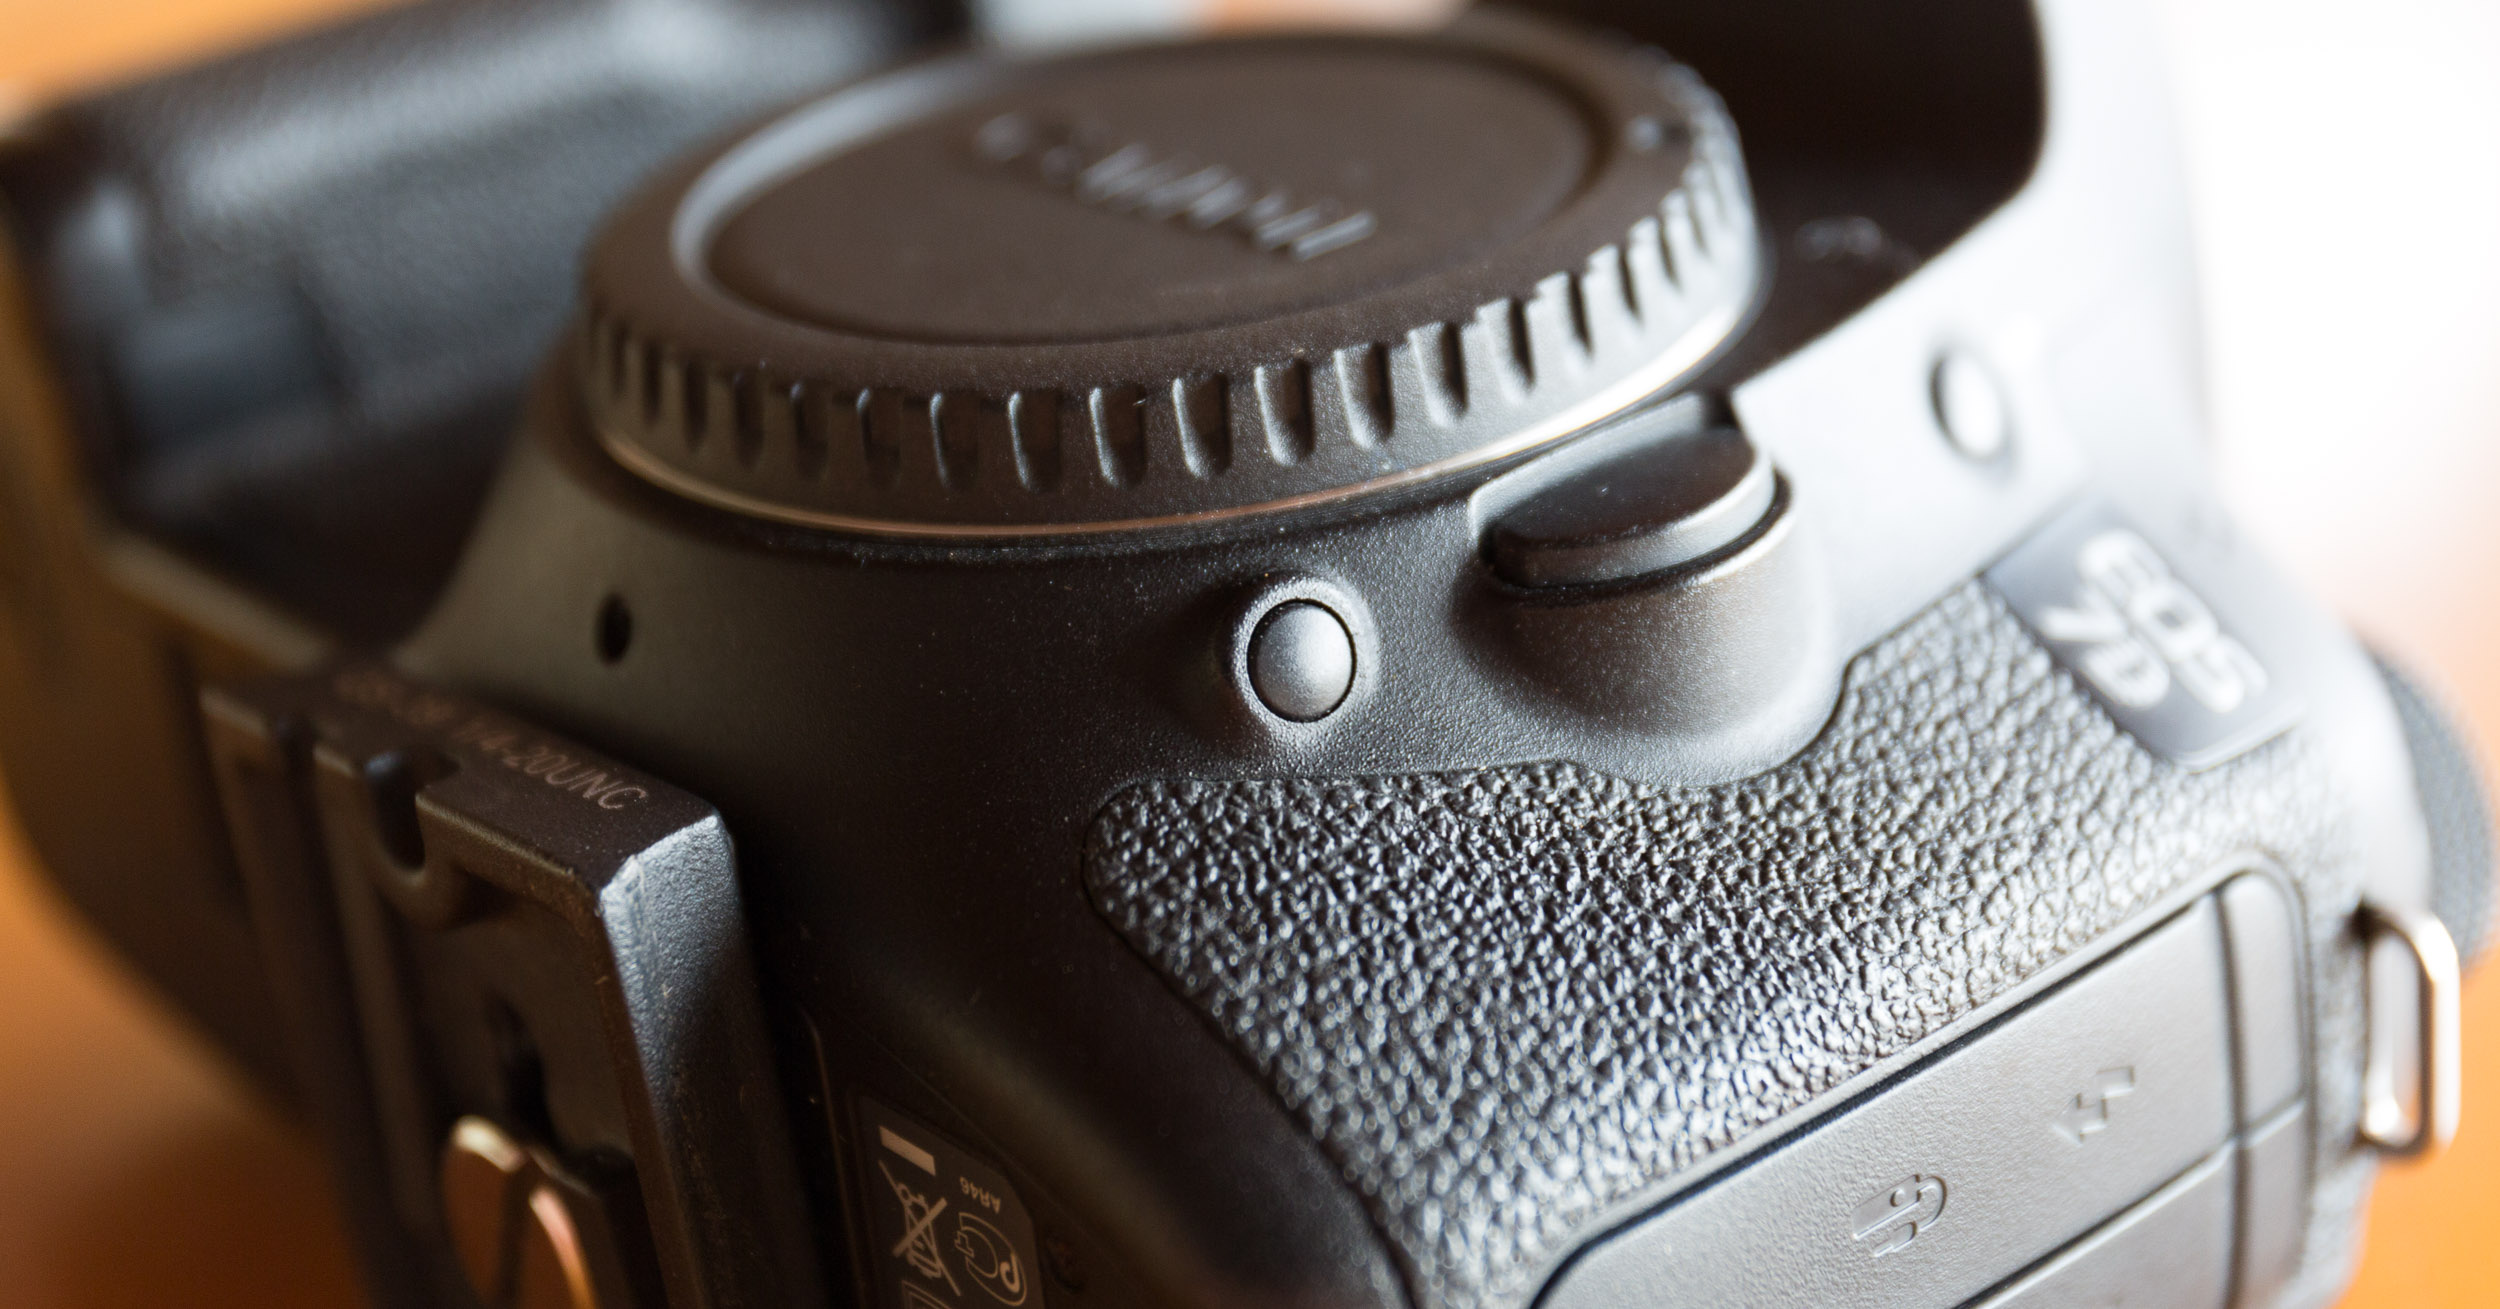 Centre of frame: the mysterious depth-of-field preview button.